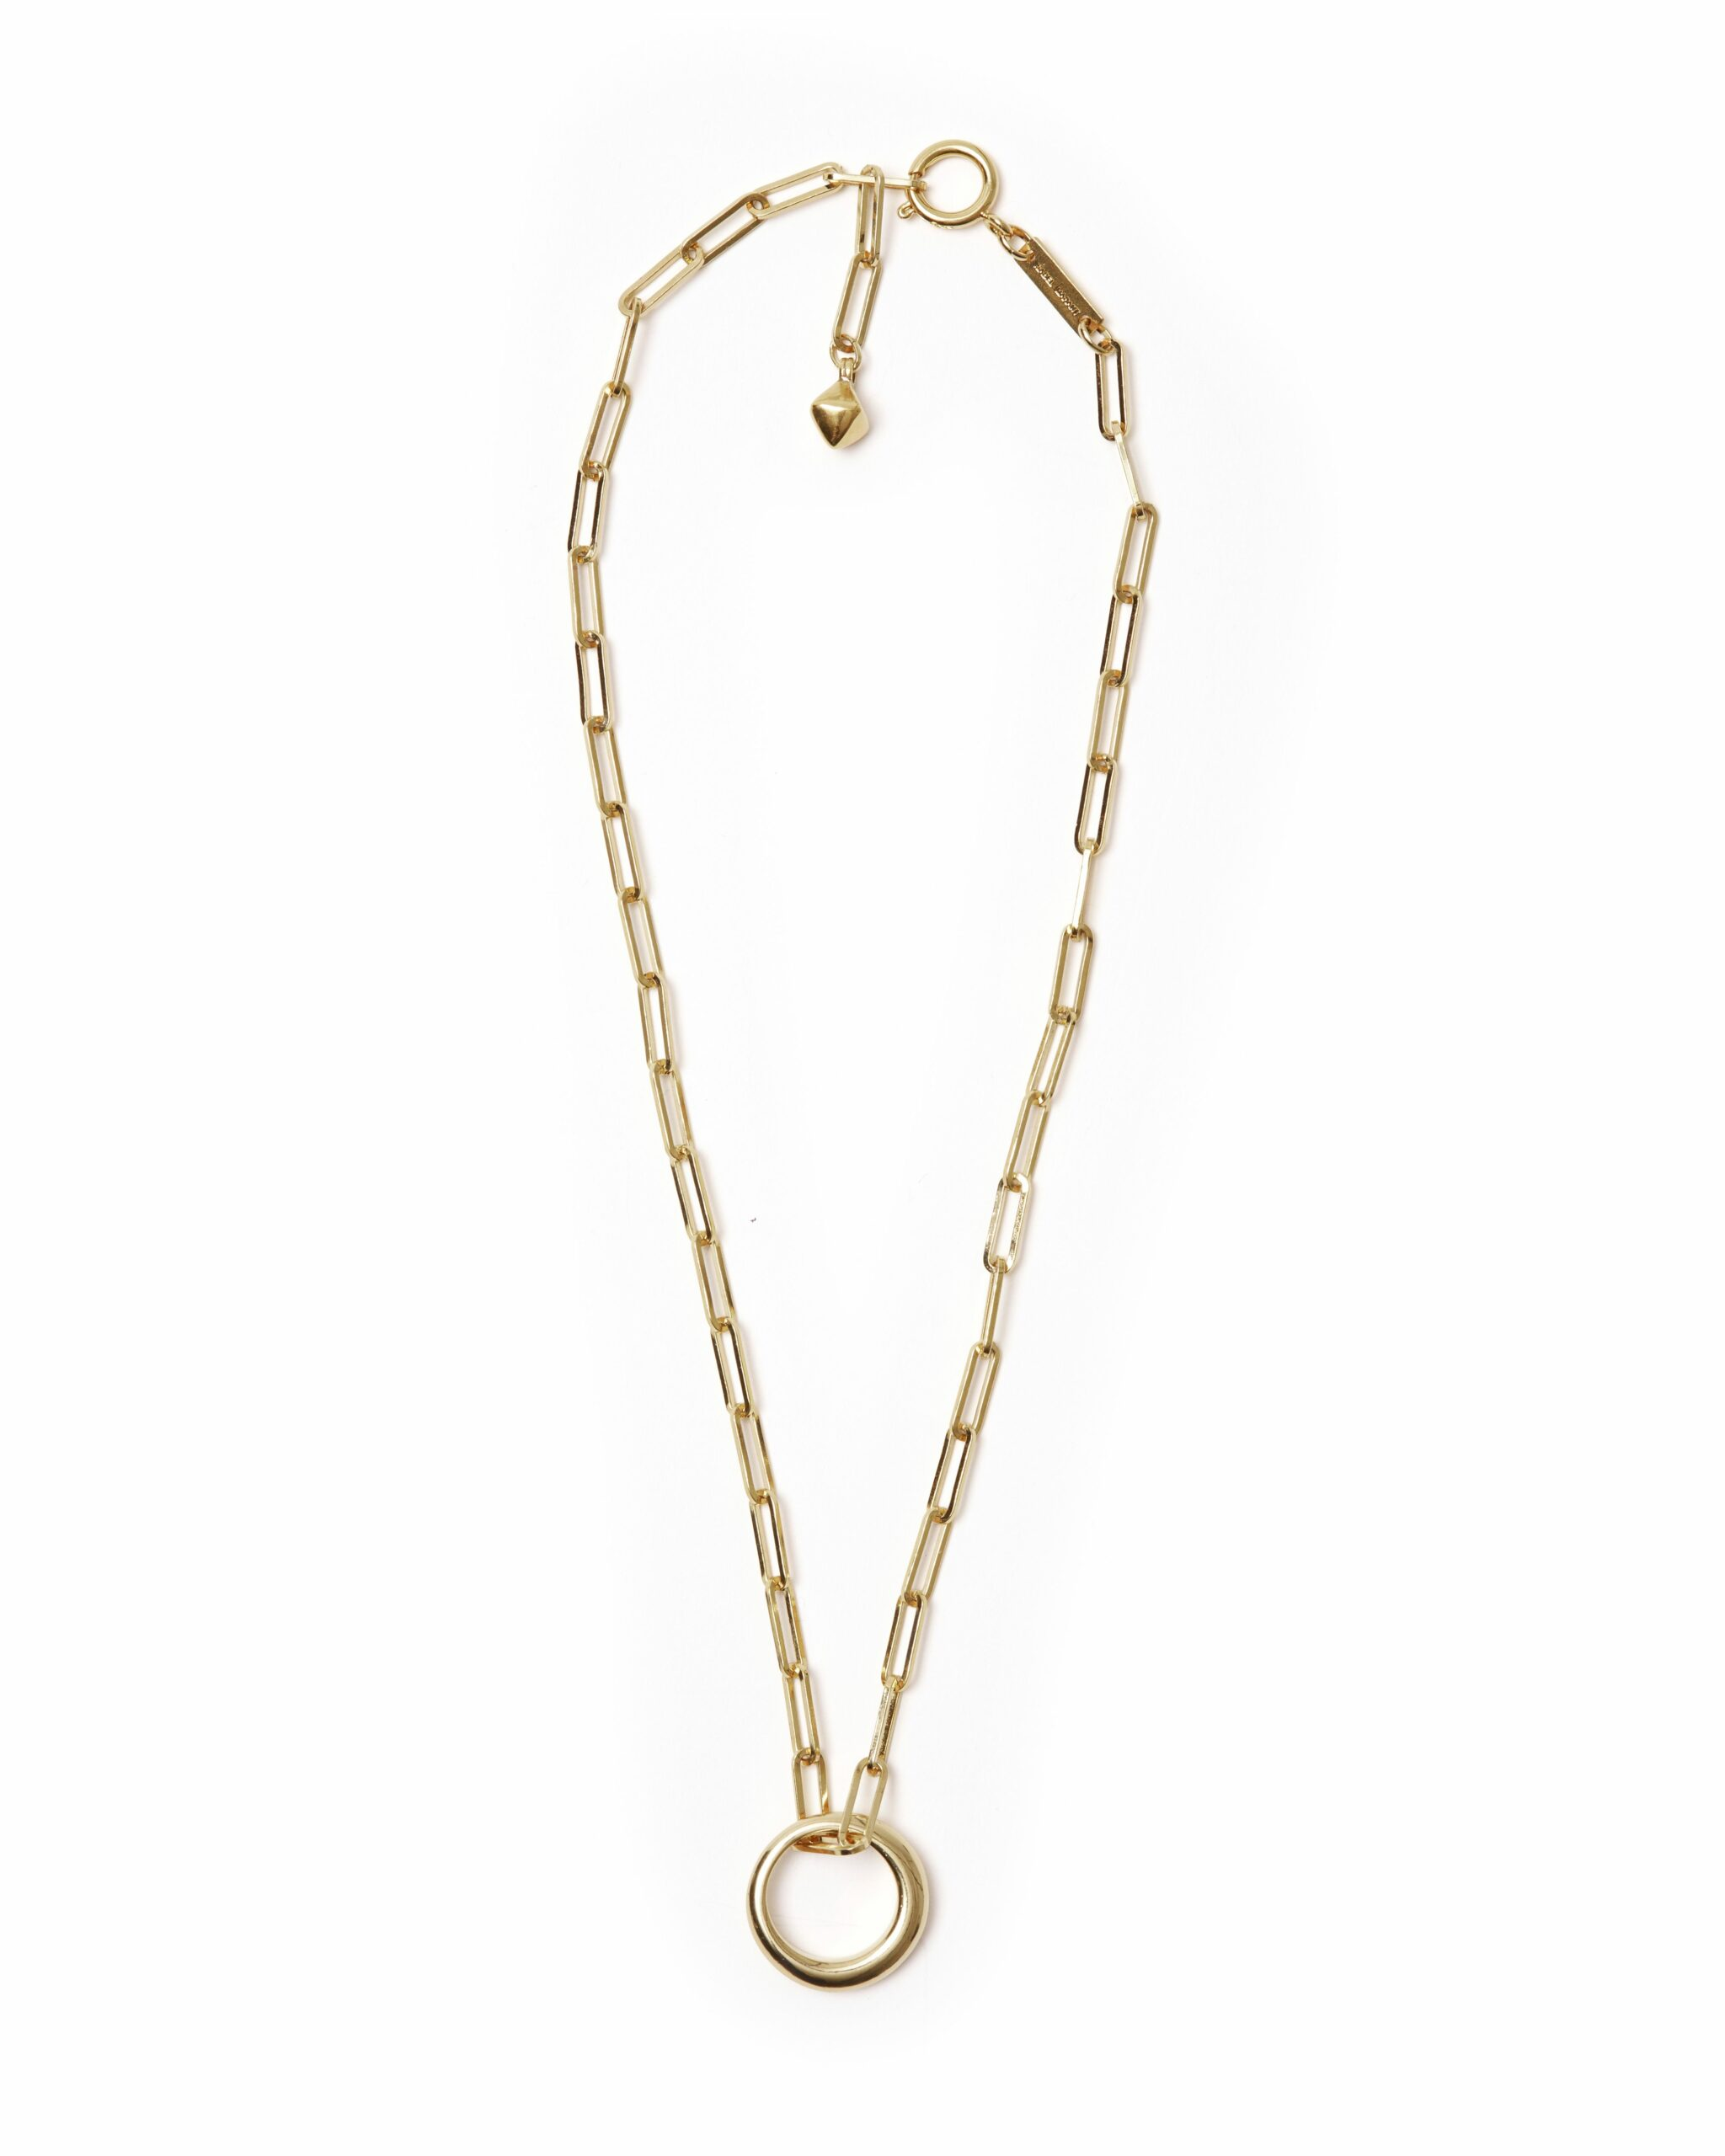 Kette, Isabel Marant, Jewelry, Ring